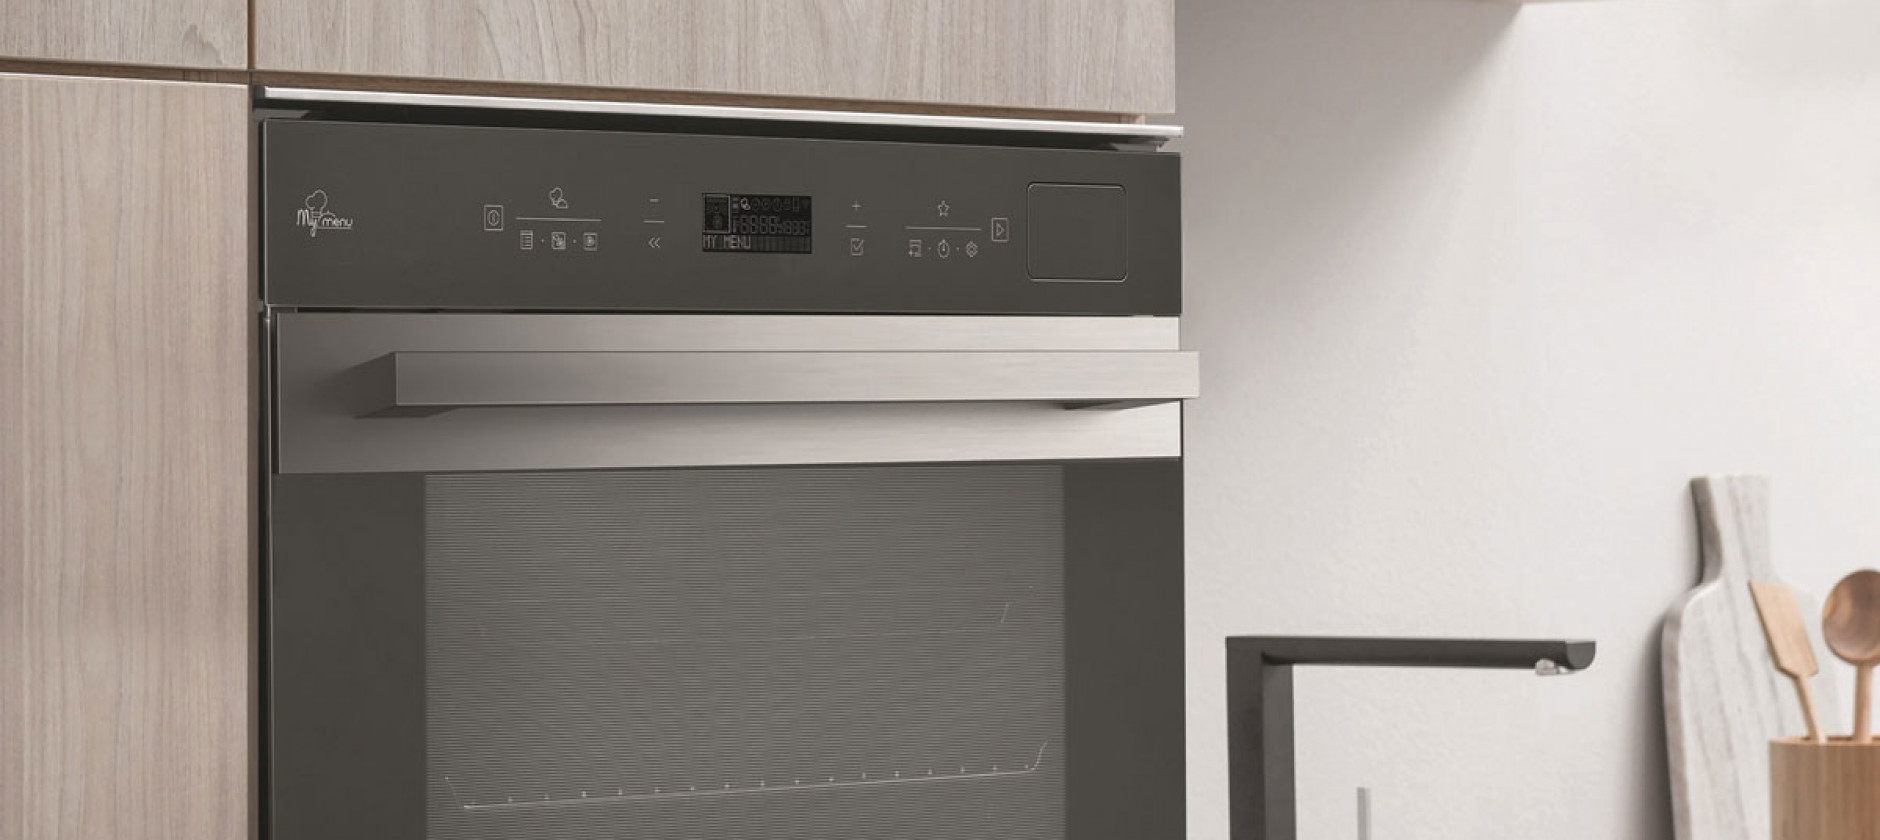 Con Hotpoint Activesteam 75, gusto e leggerezza in cucina